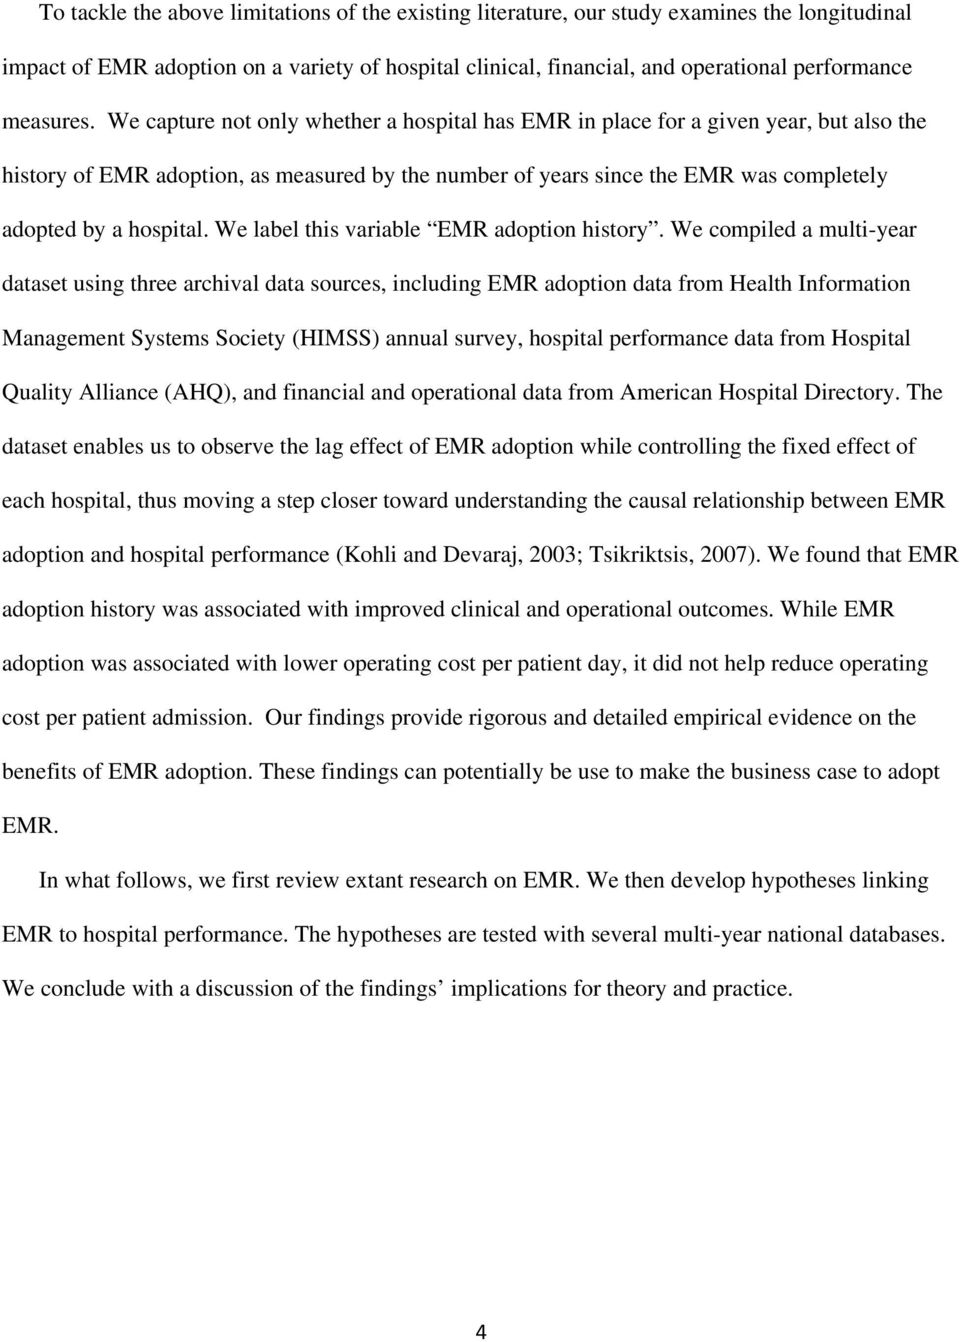 We capture not only whether a hospital has EMR in place for a given year, but also the history of EMR adoption, as measured by the number of years since the EMR was completely adopted by a hospital.